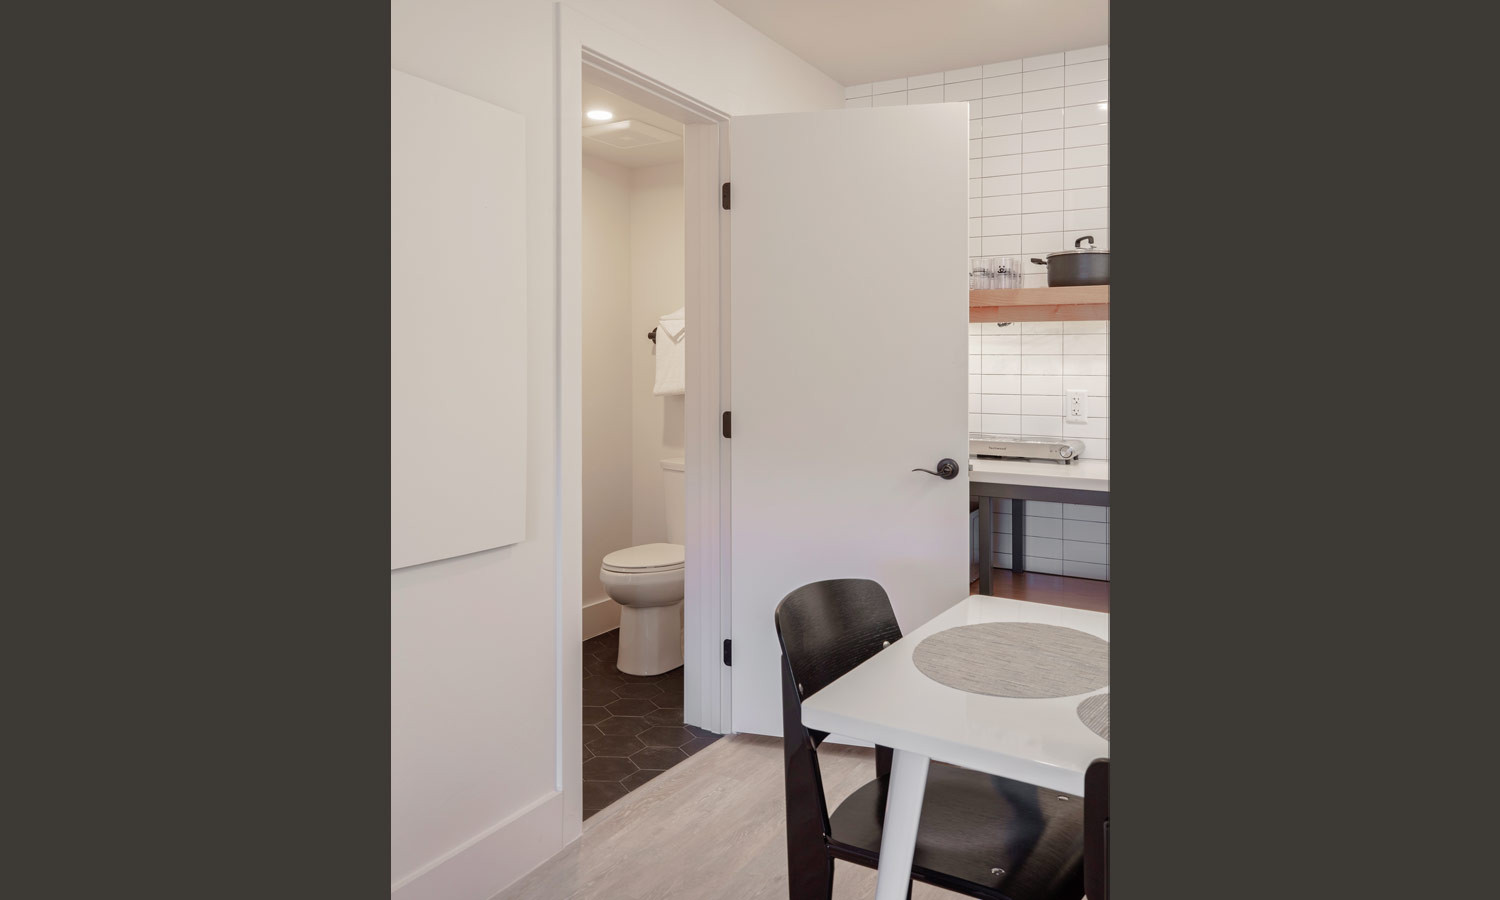 Two Floor Suite: Half bath